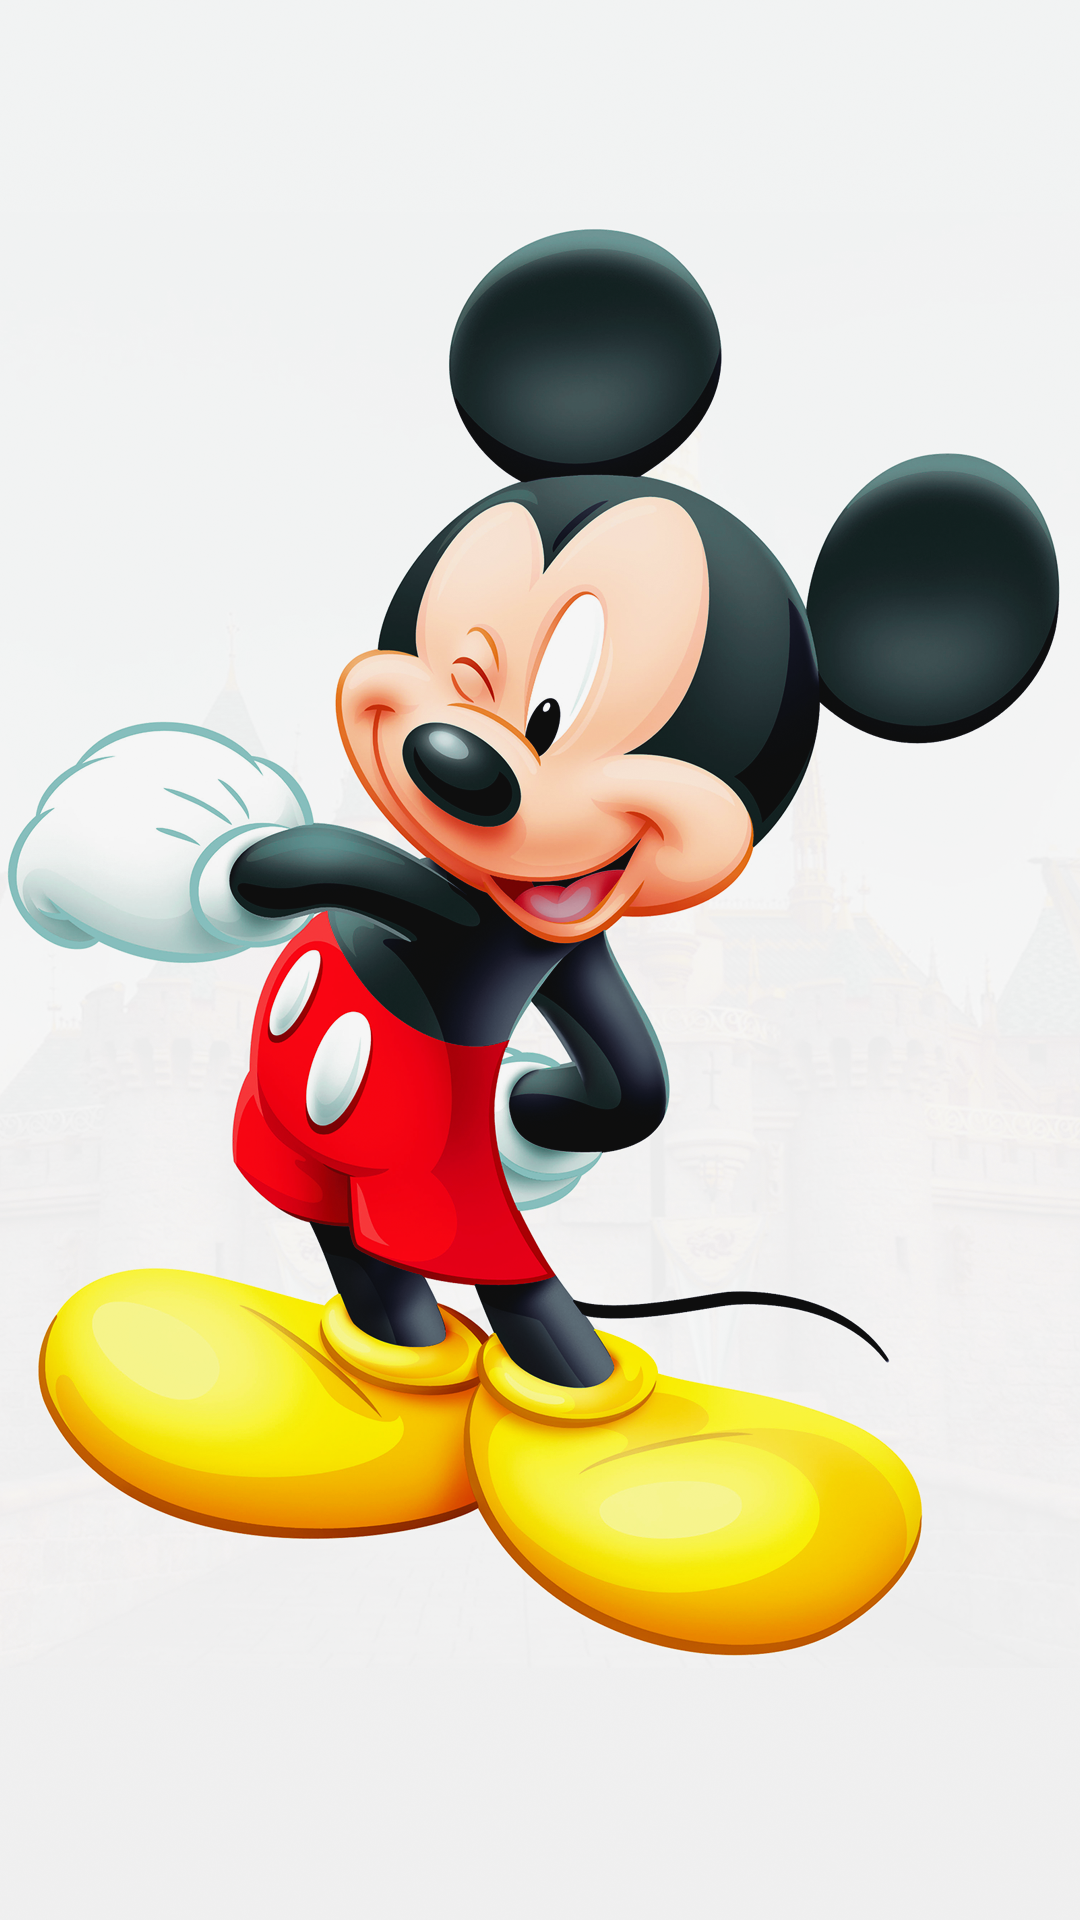 mickey_FreeHDMickeyMouseiPhoneWallpaperForDownload0459